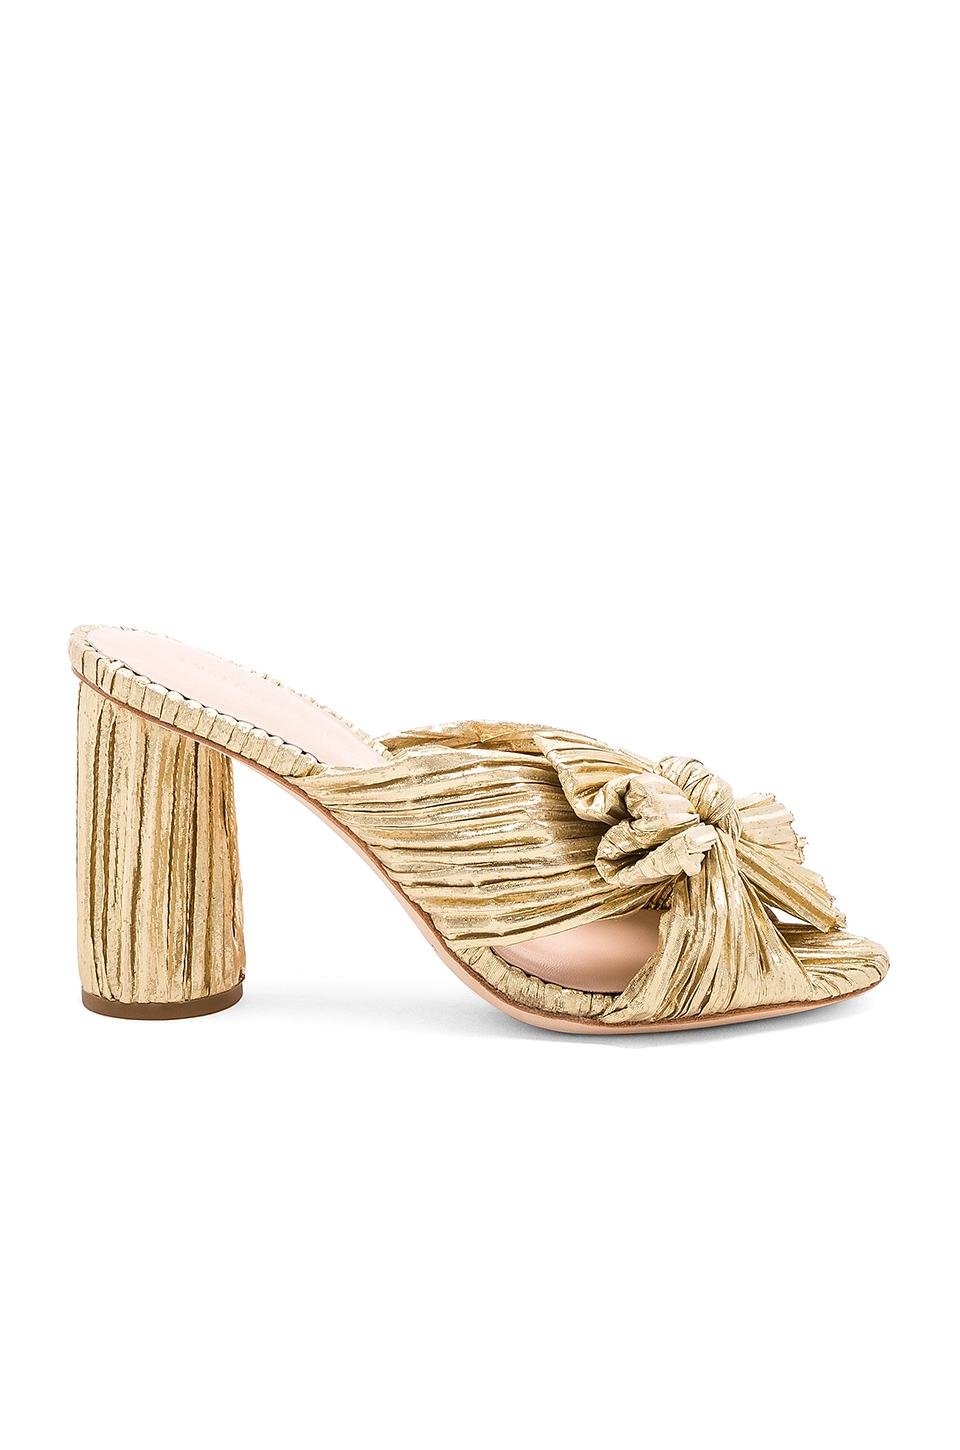 Loeffler Randall Penny Pleated Knotted High Heel Sandals RDYlREz0h